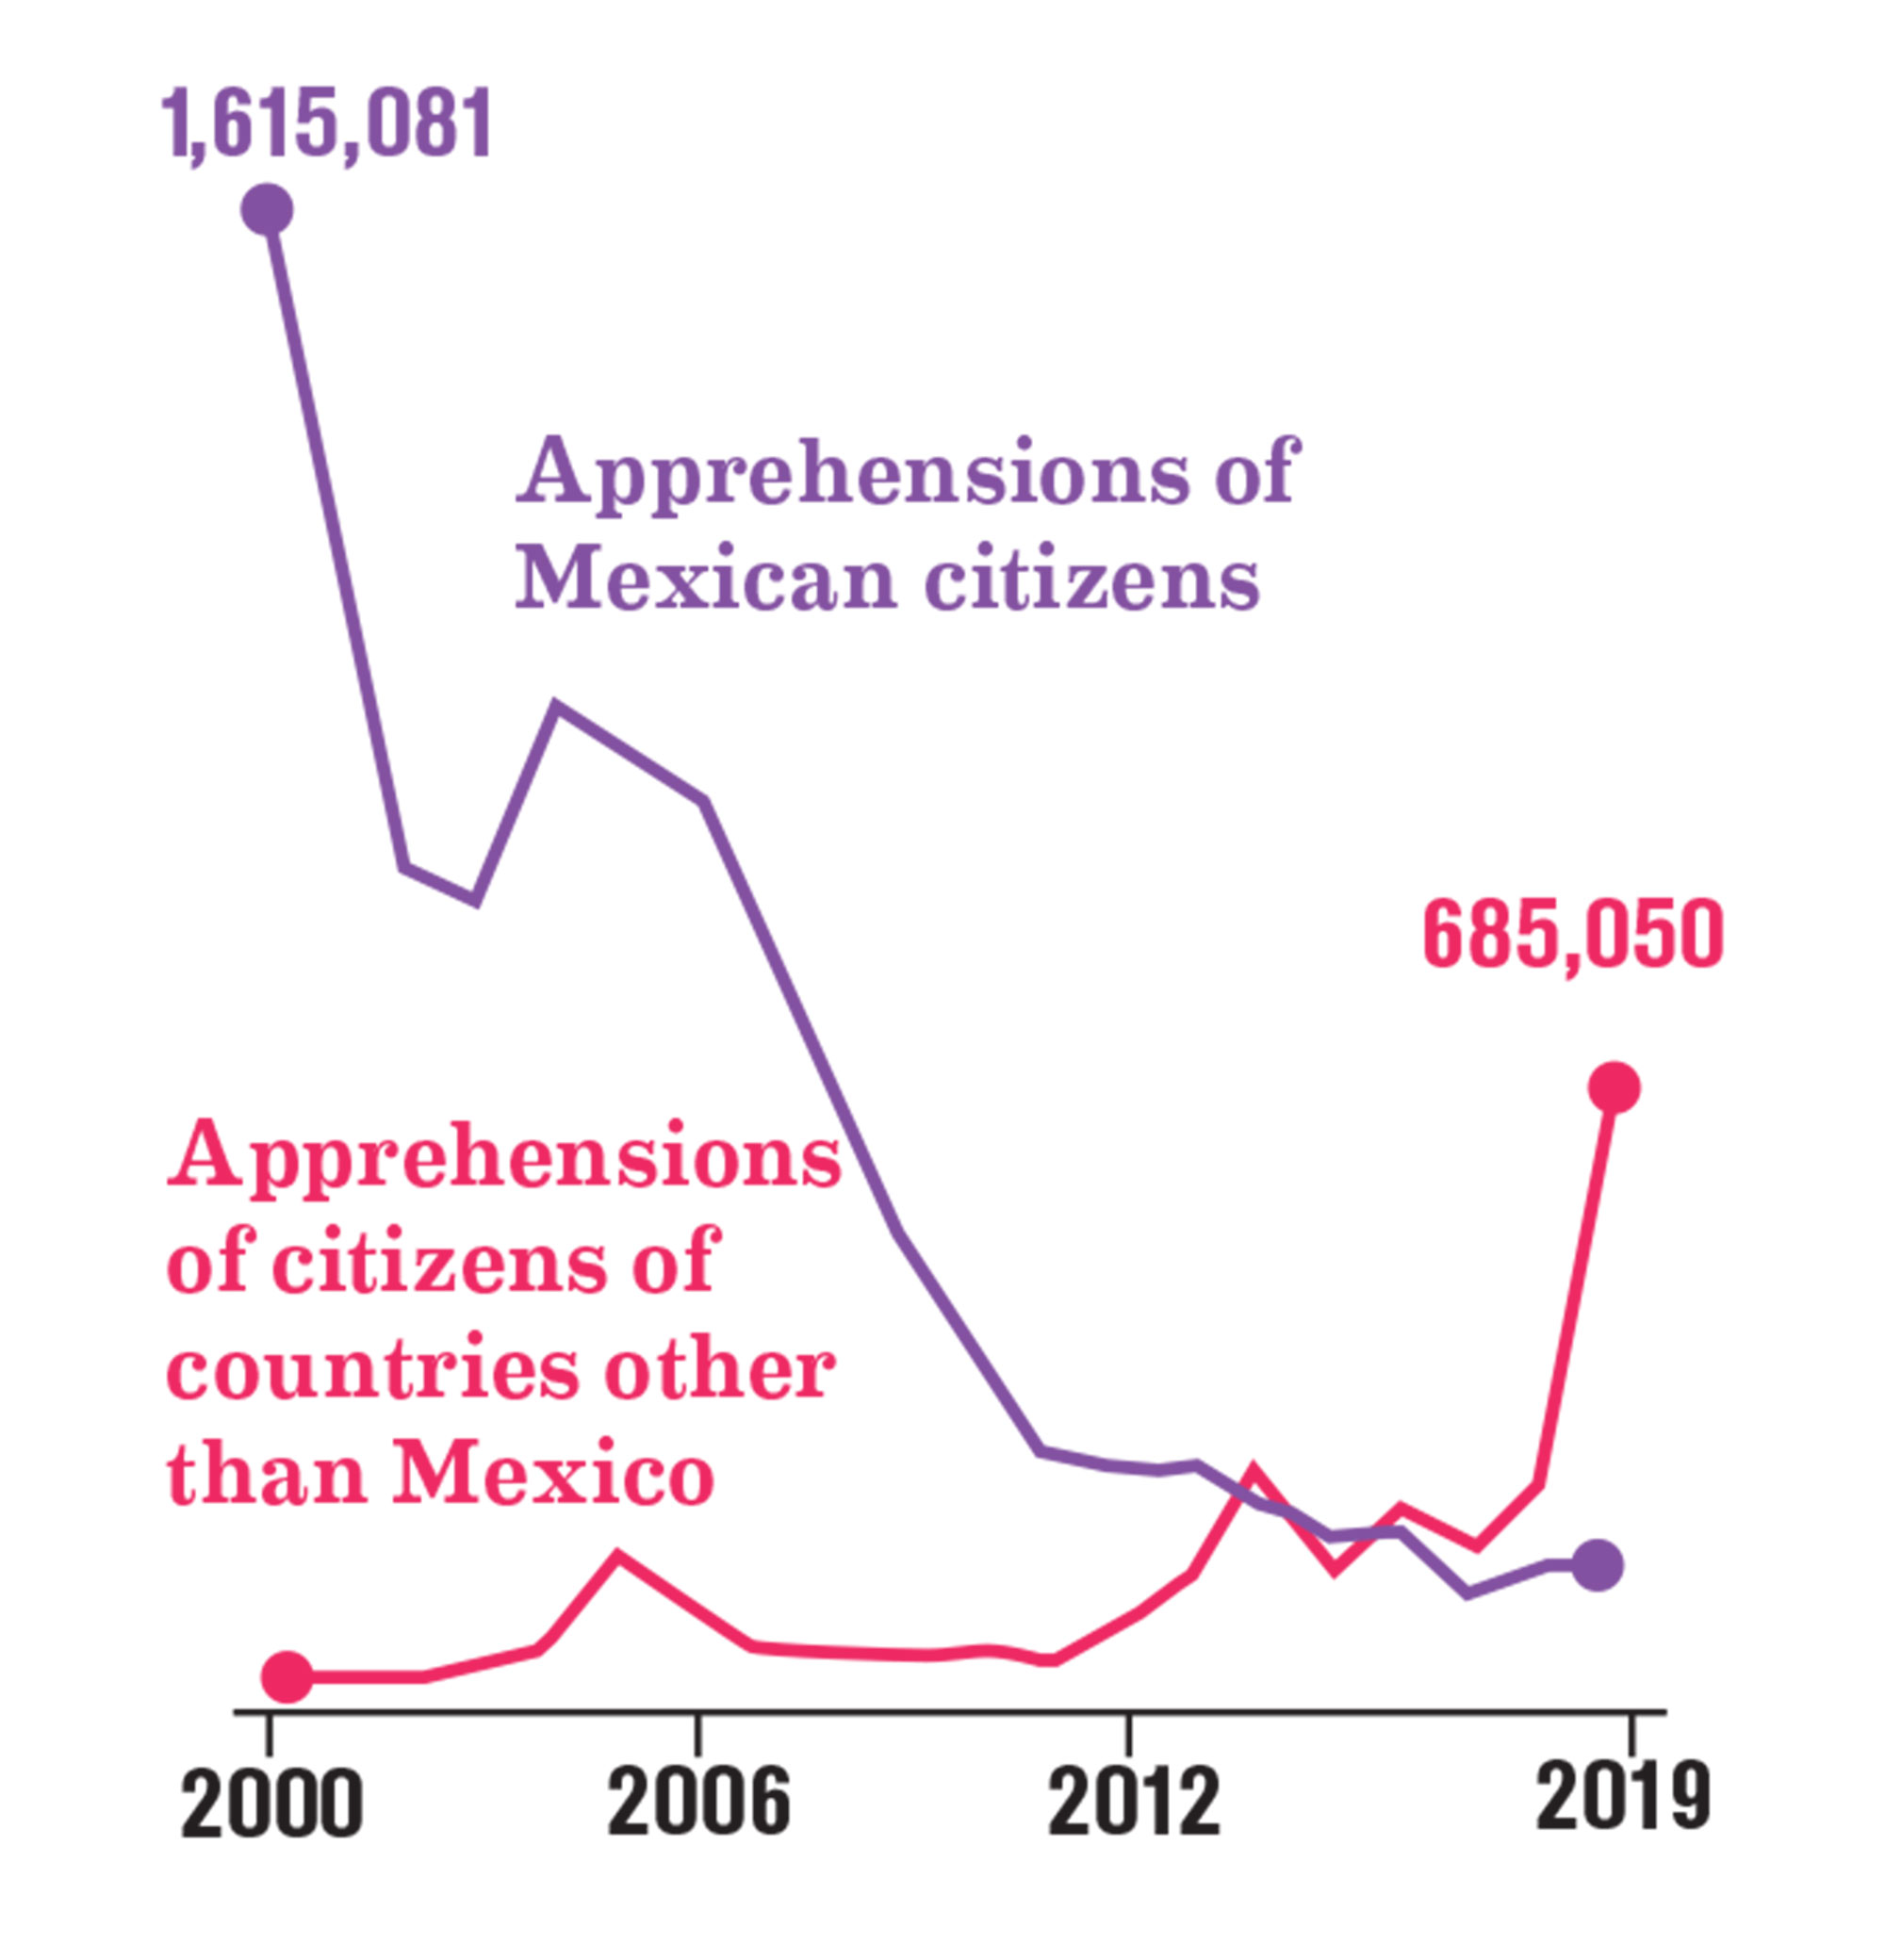 Source: U.S. Customs and Border Protection.